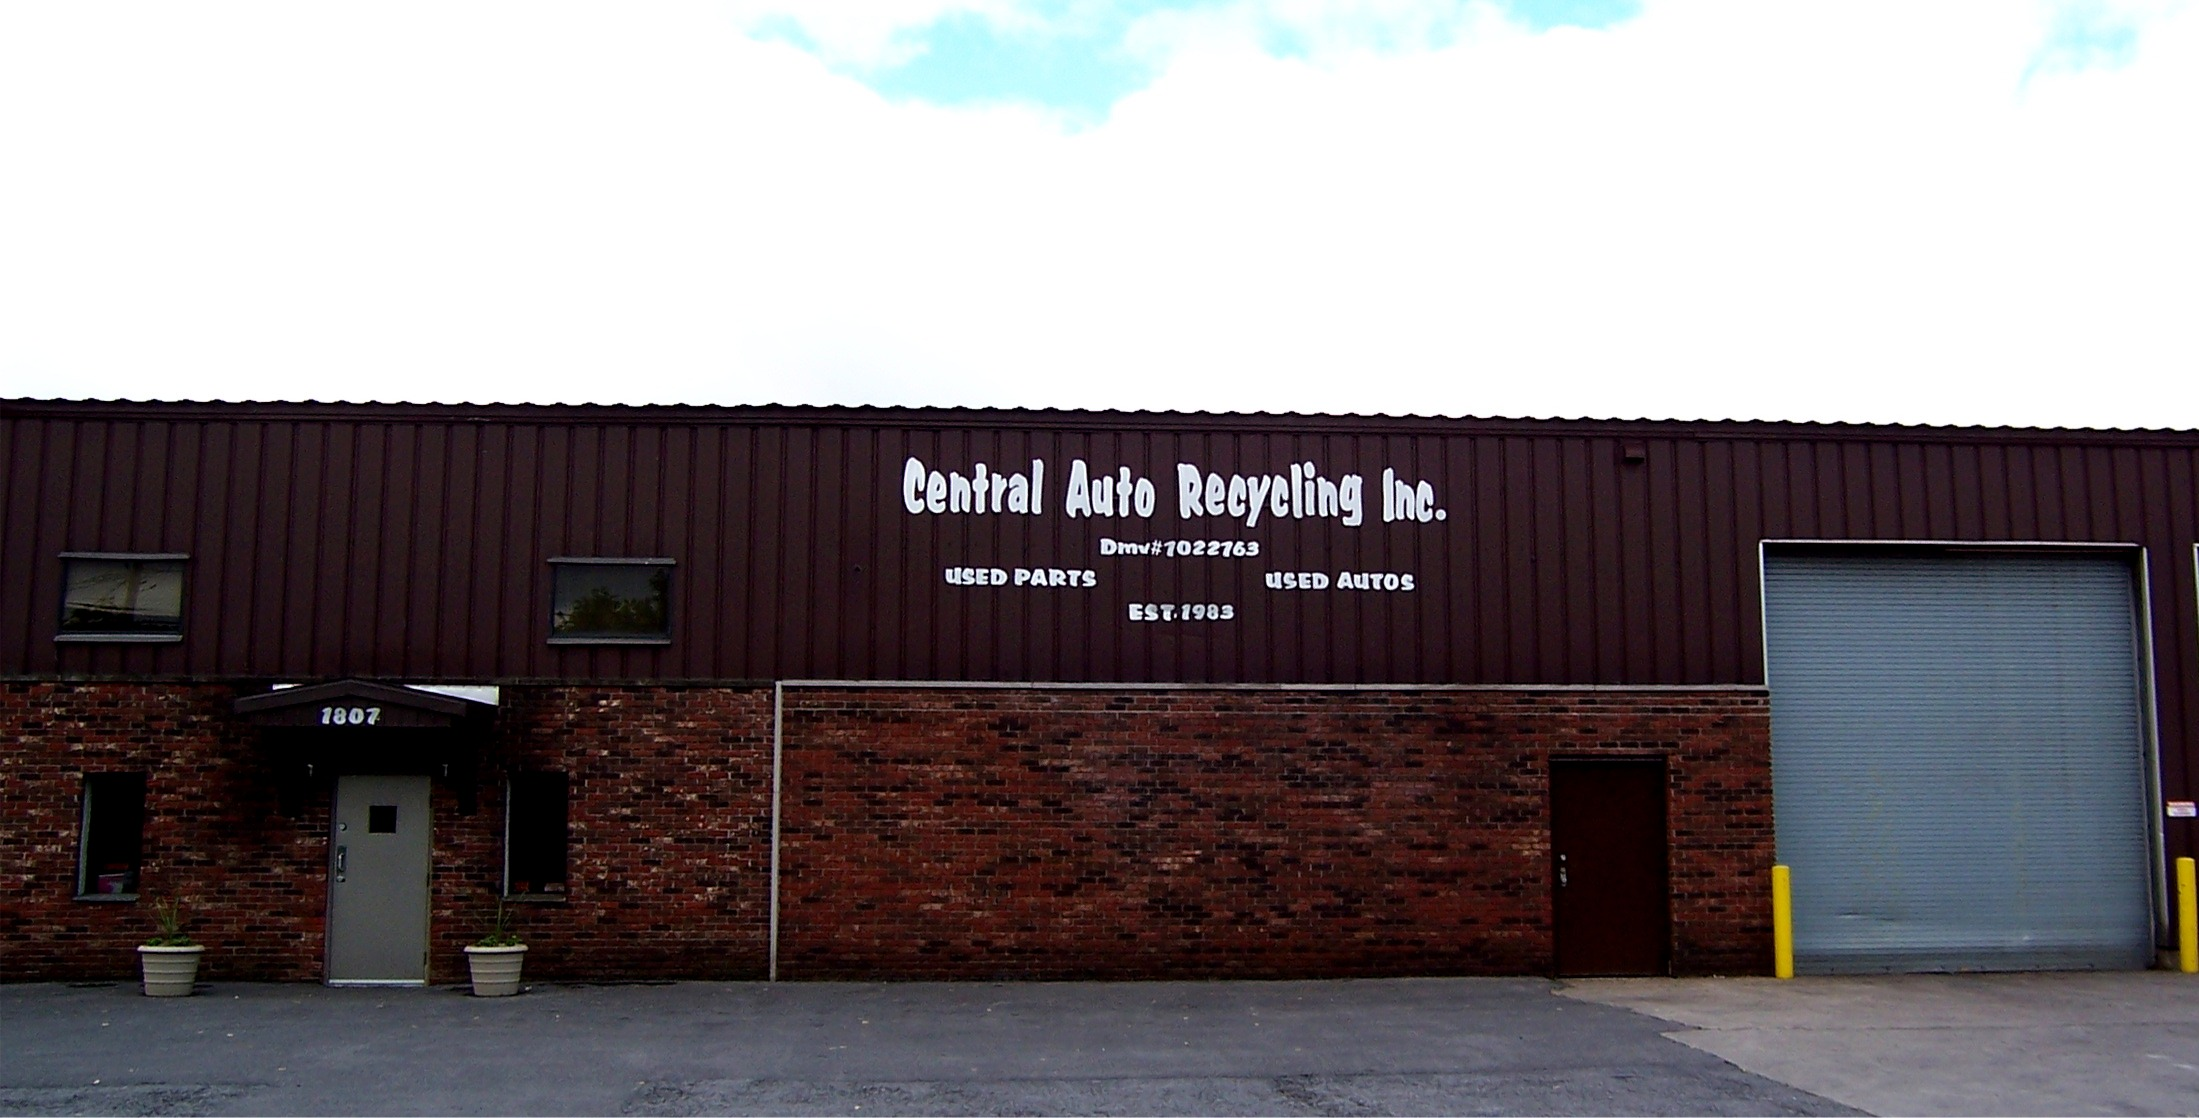 Central Auto Recycling, Inc. Home Office and Headquarters